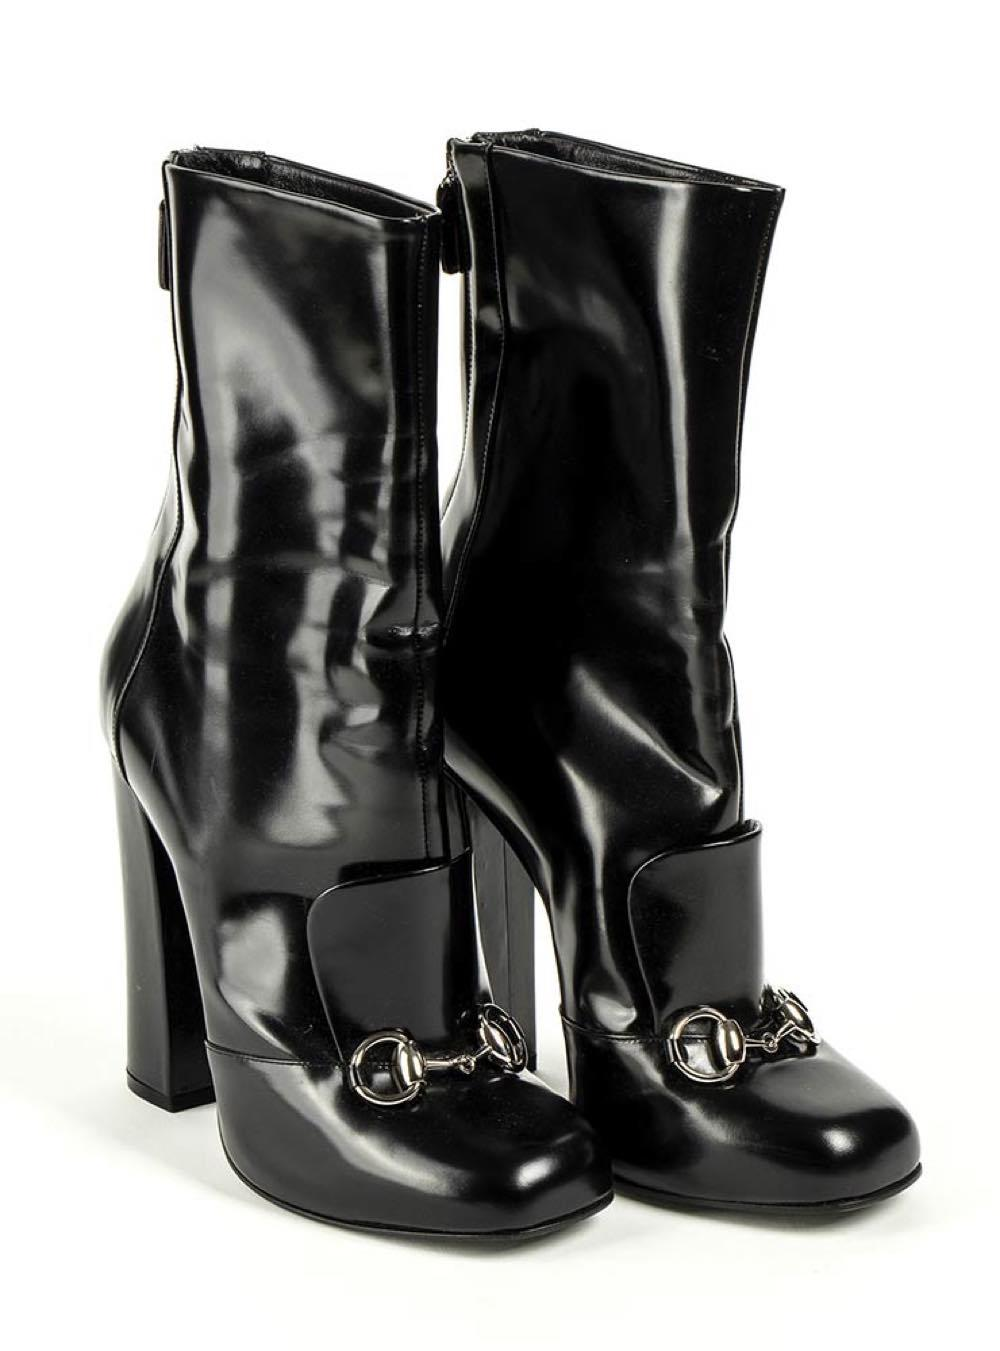 GUCCI - LEATHER ANKLE BOOTS - 2010 ca